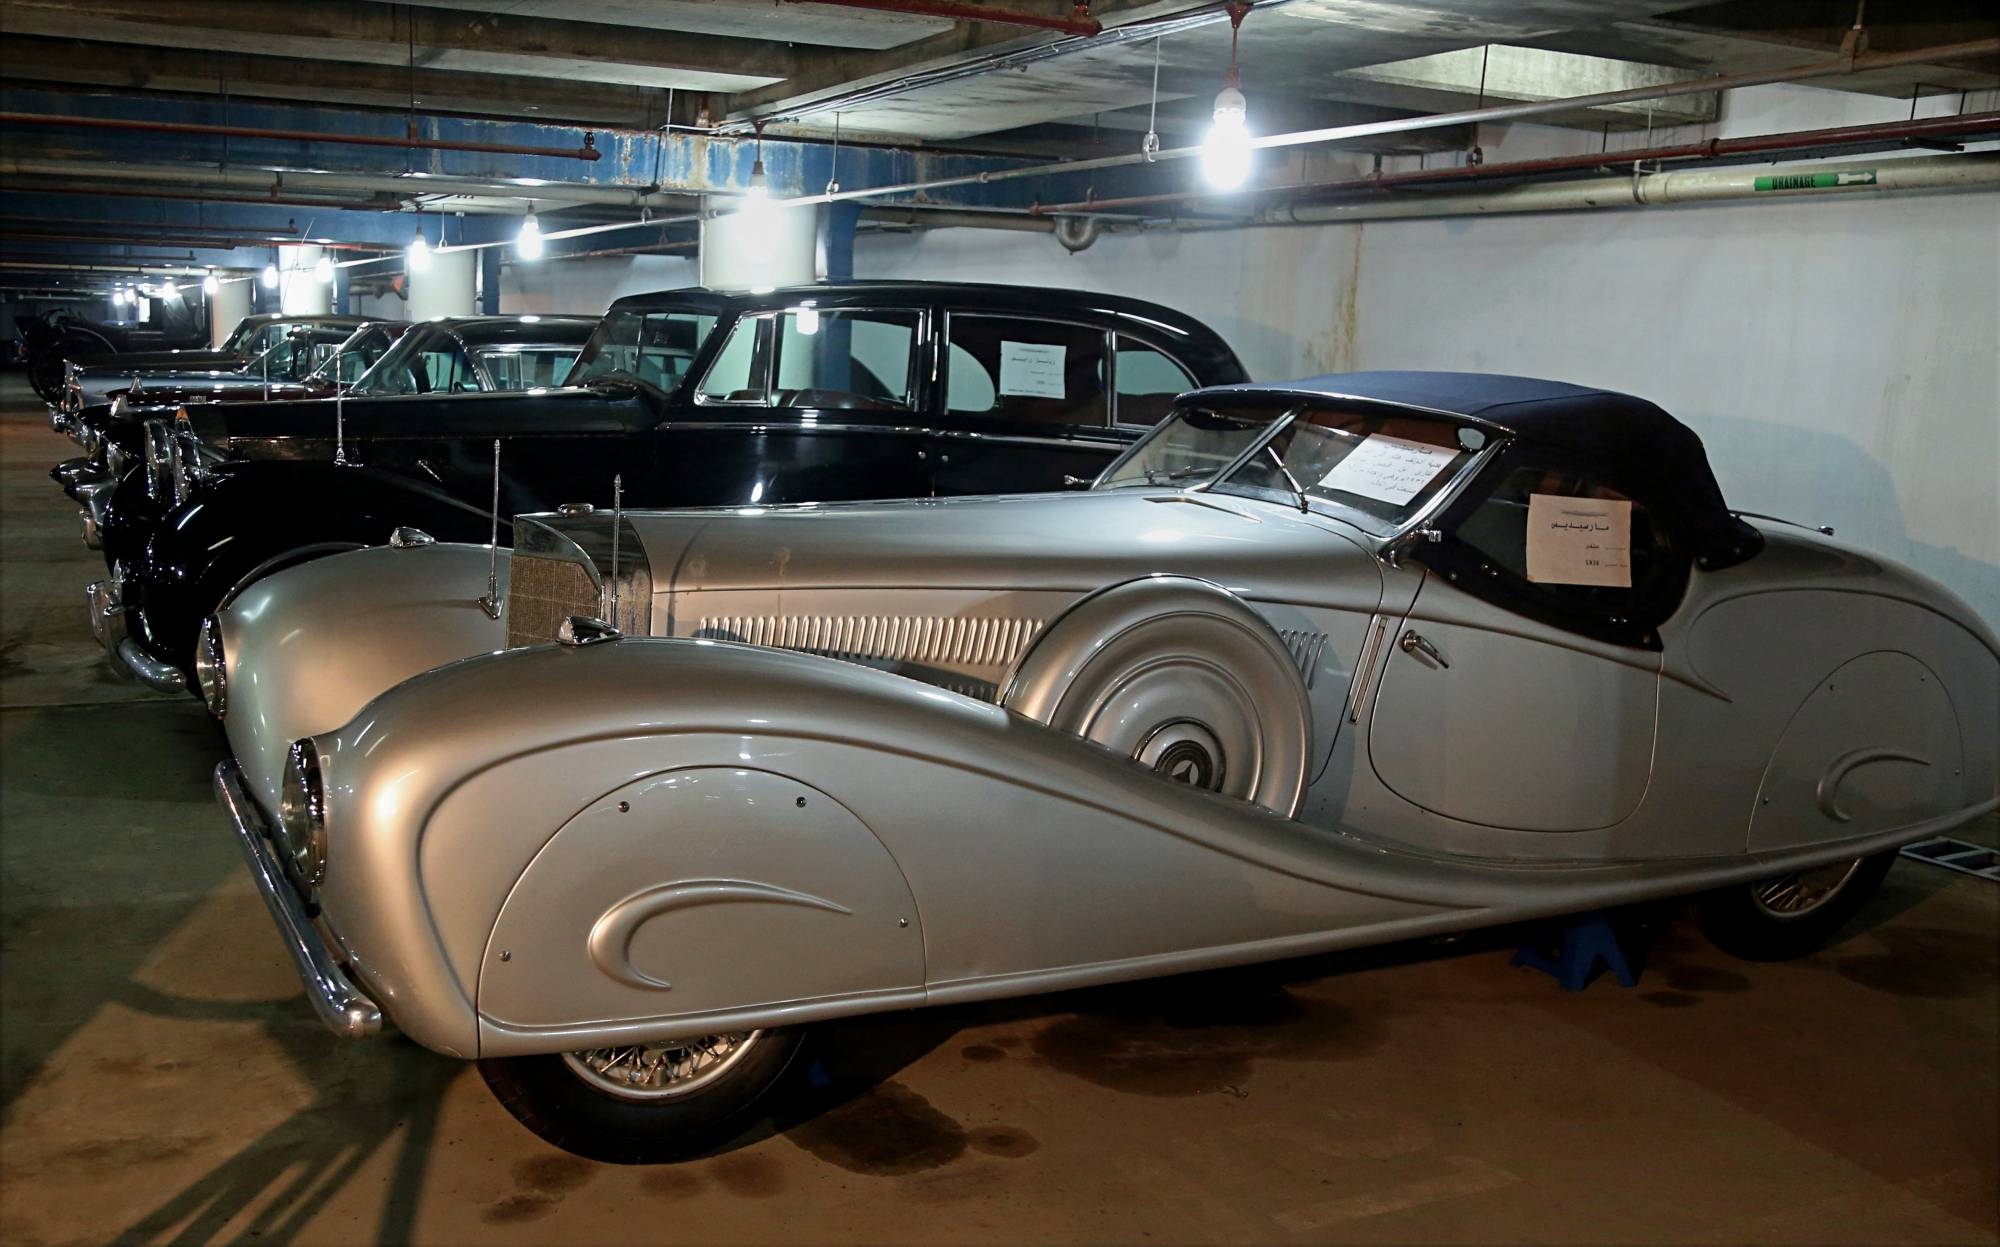 Optimism in Iraq fuels revived interest in classic cars | WTOP